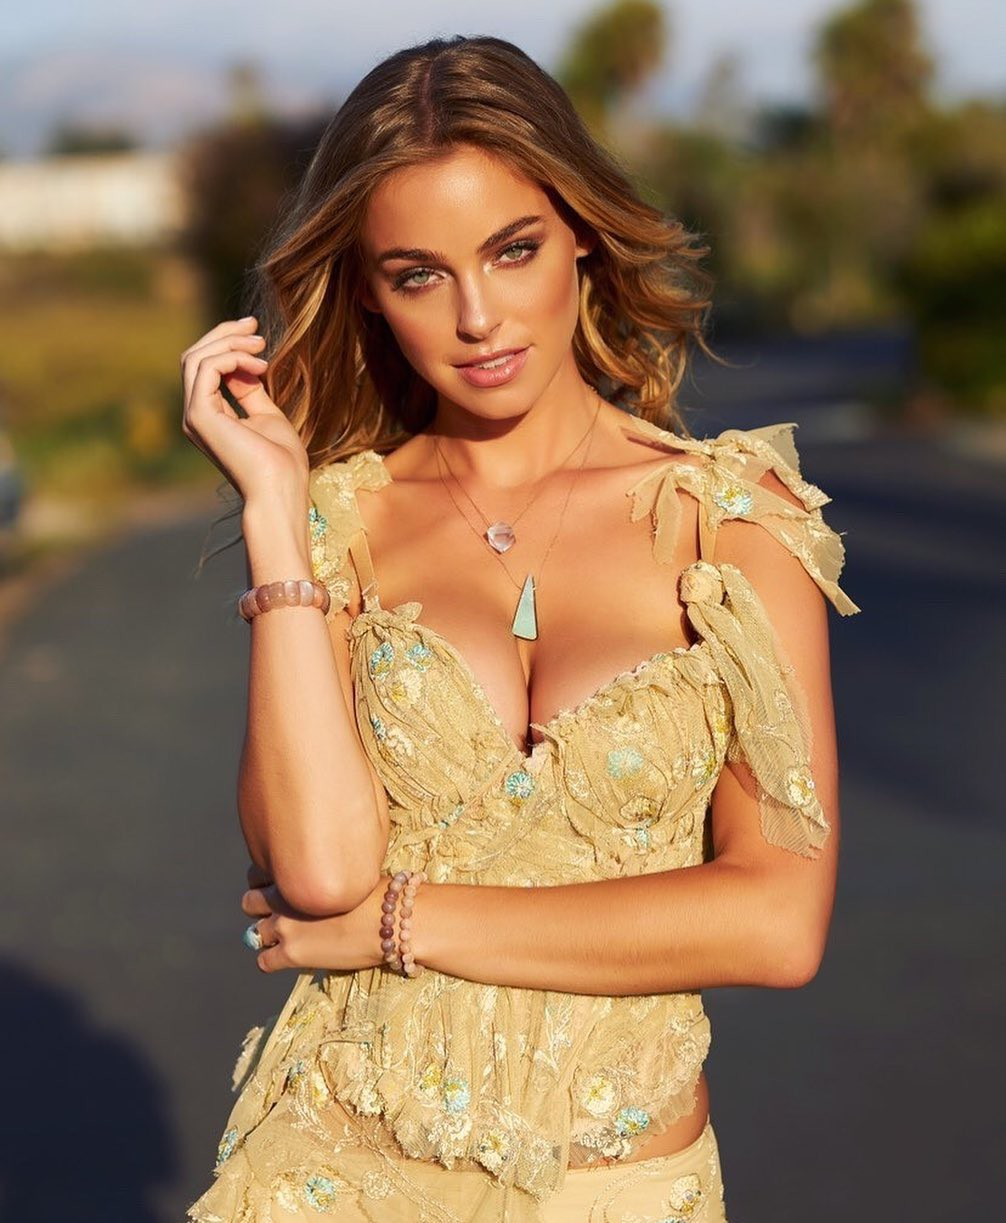 Elizabeth Turner dress colour outfit, you must try, best photoshoot ideas, in blond hairs